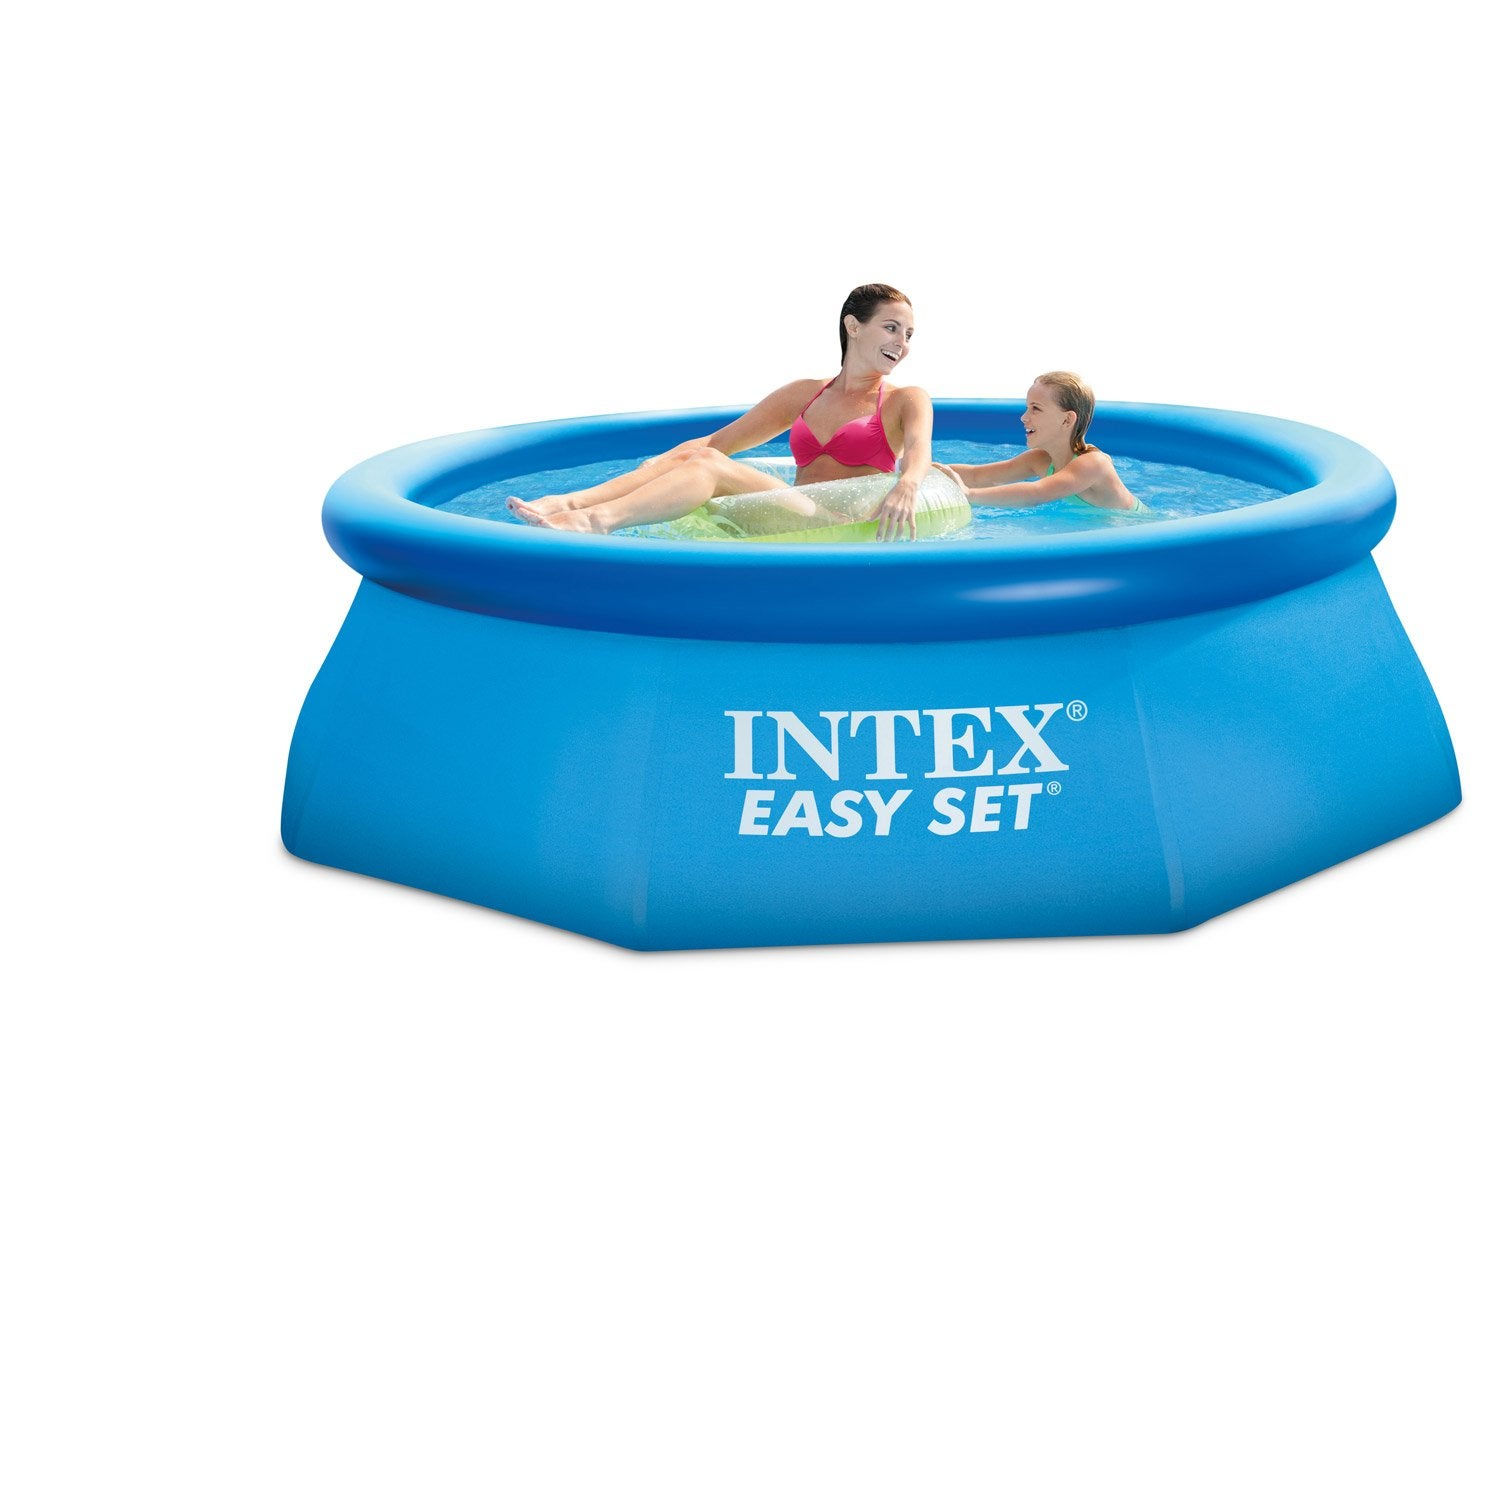 Piscine hors sol autoportante gonflable easy set intex x h for Piscine hors sol intex autoportante